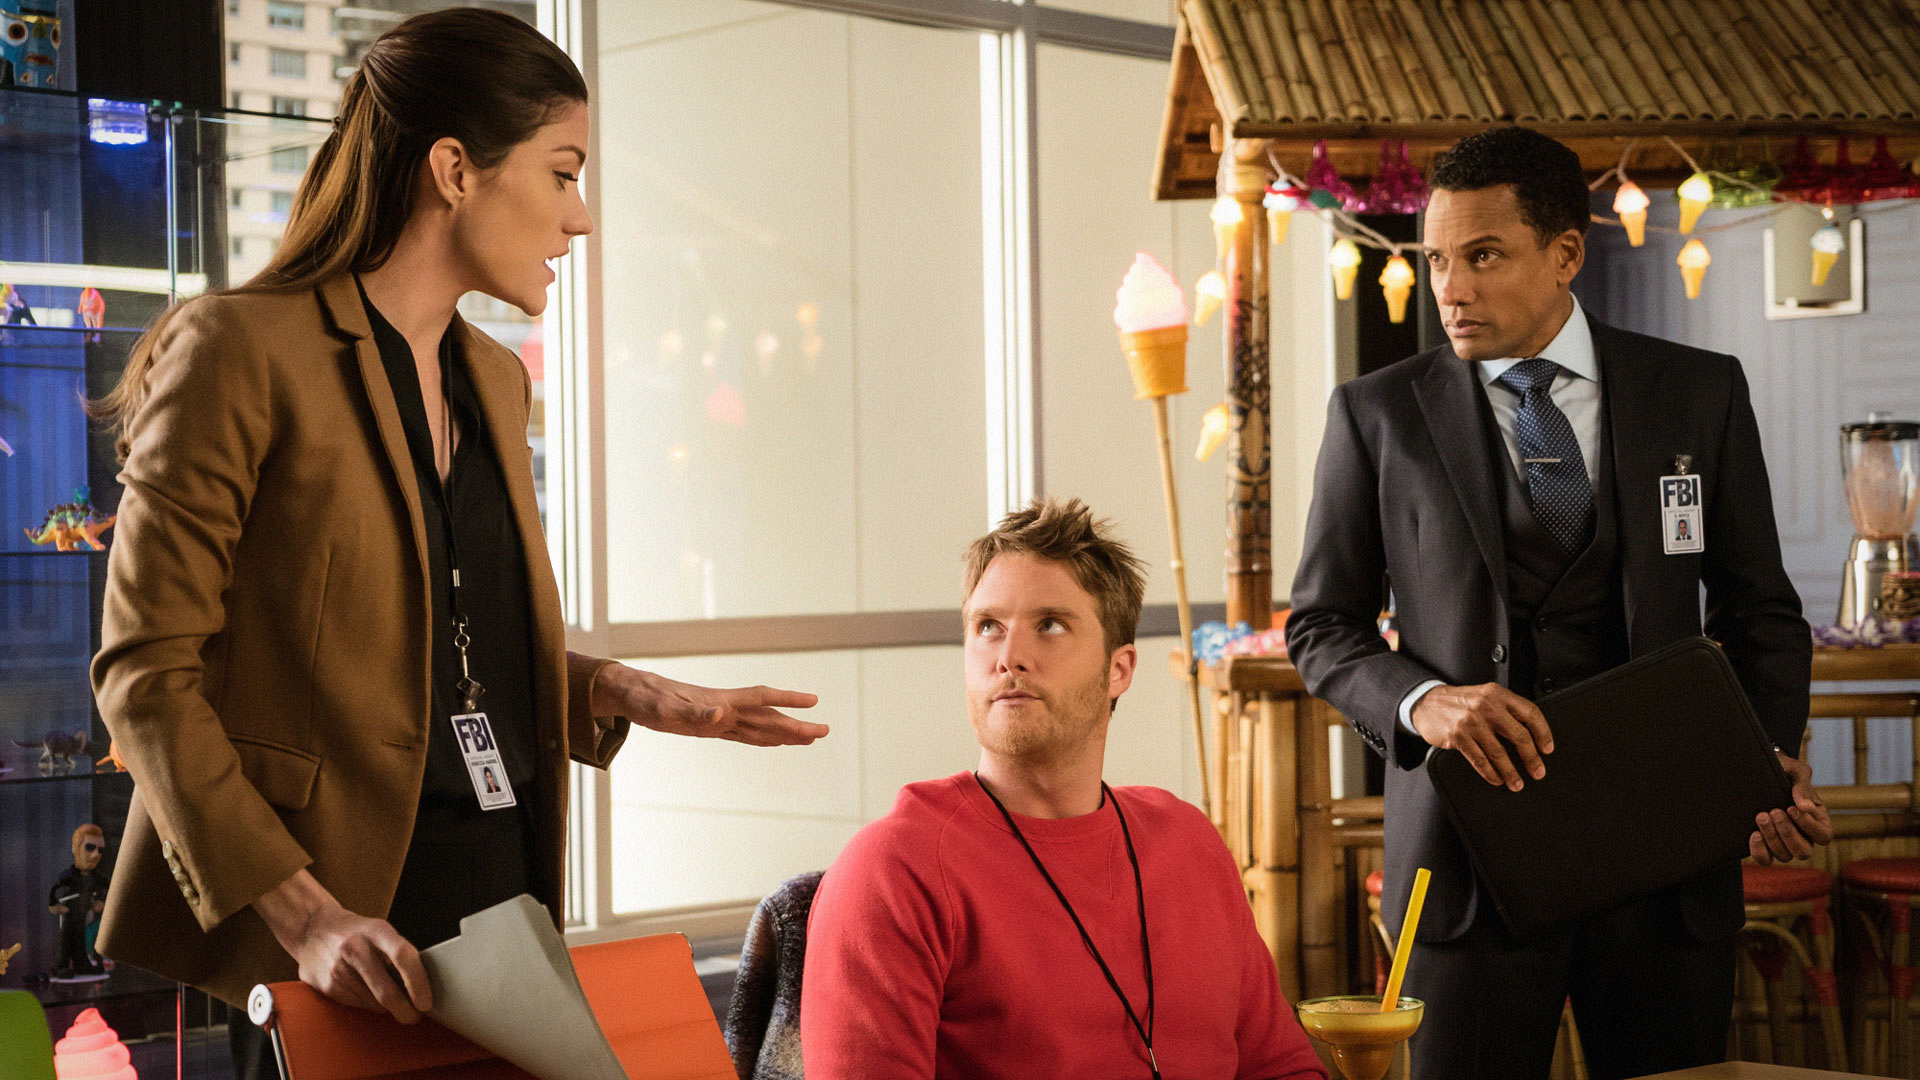 Jennifer Carpenter as Agent Rebecca Harris, Jake McDorman as Brian Finch, and Hill Harper as Agent Spellman Boyle